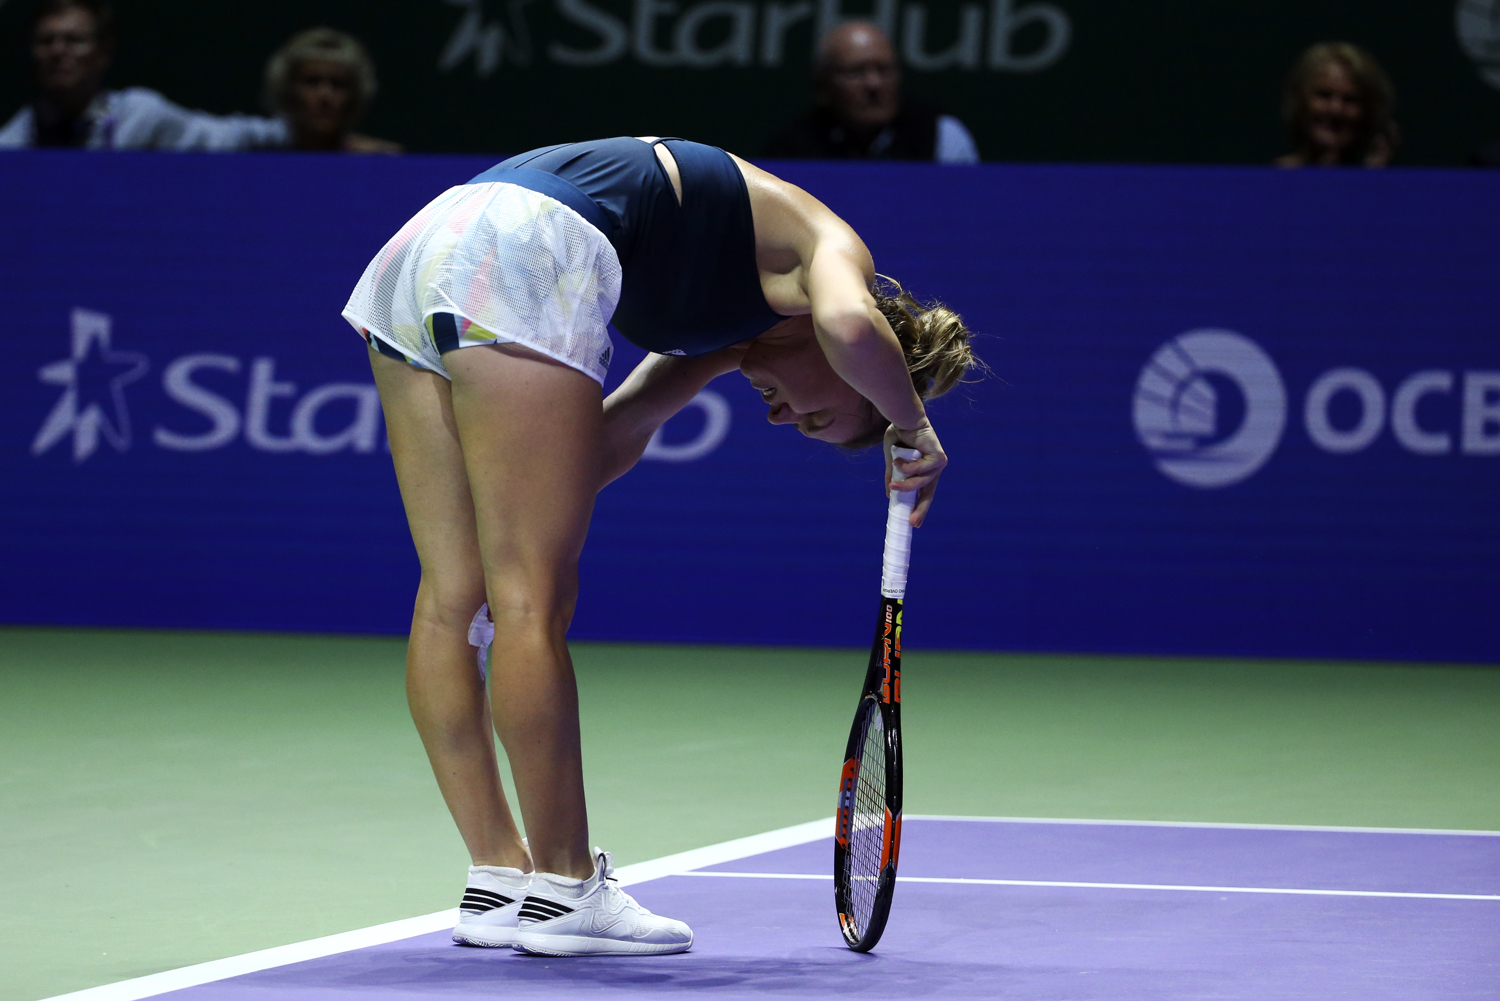 Tennis - BNP Paribas WTA Finals - Singapore Indoor Stadium - 27/10/16 Romania's Simona Halep clutches her left knee during her round robin match Mandatory Credit: Action Images / Yong Teck Lim Livepic EDITORIAL USE ONLY.